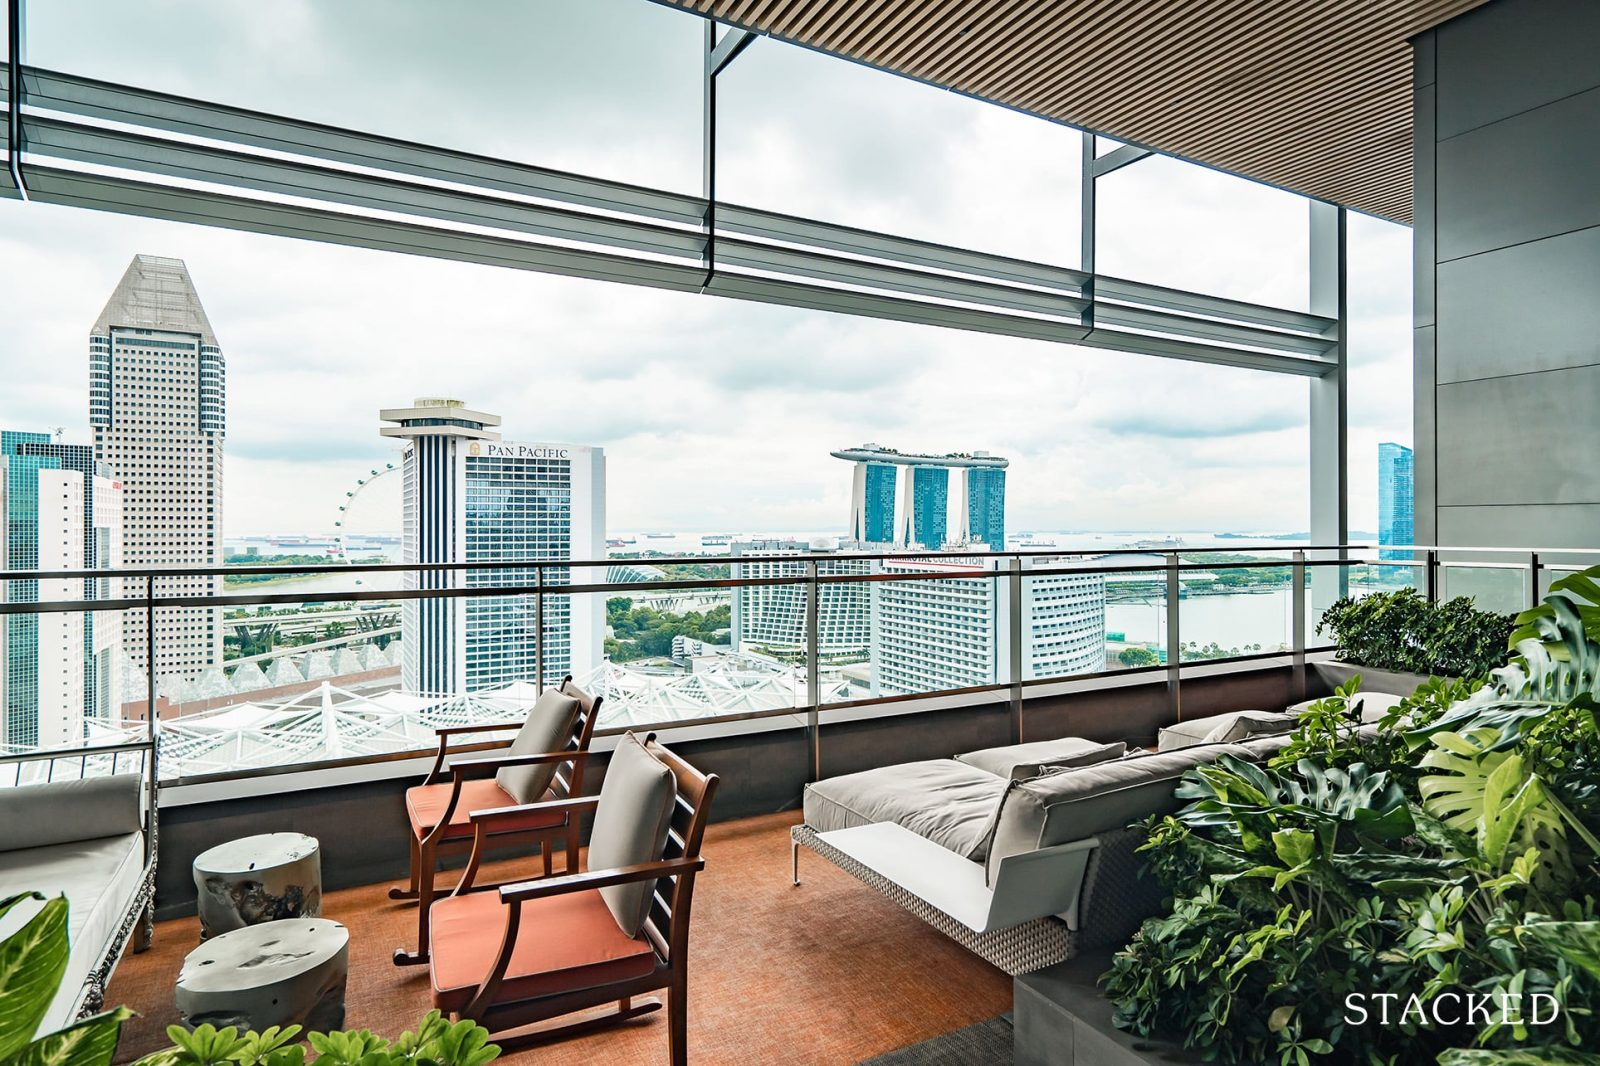 South Beach residences viewing gallery